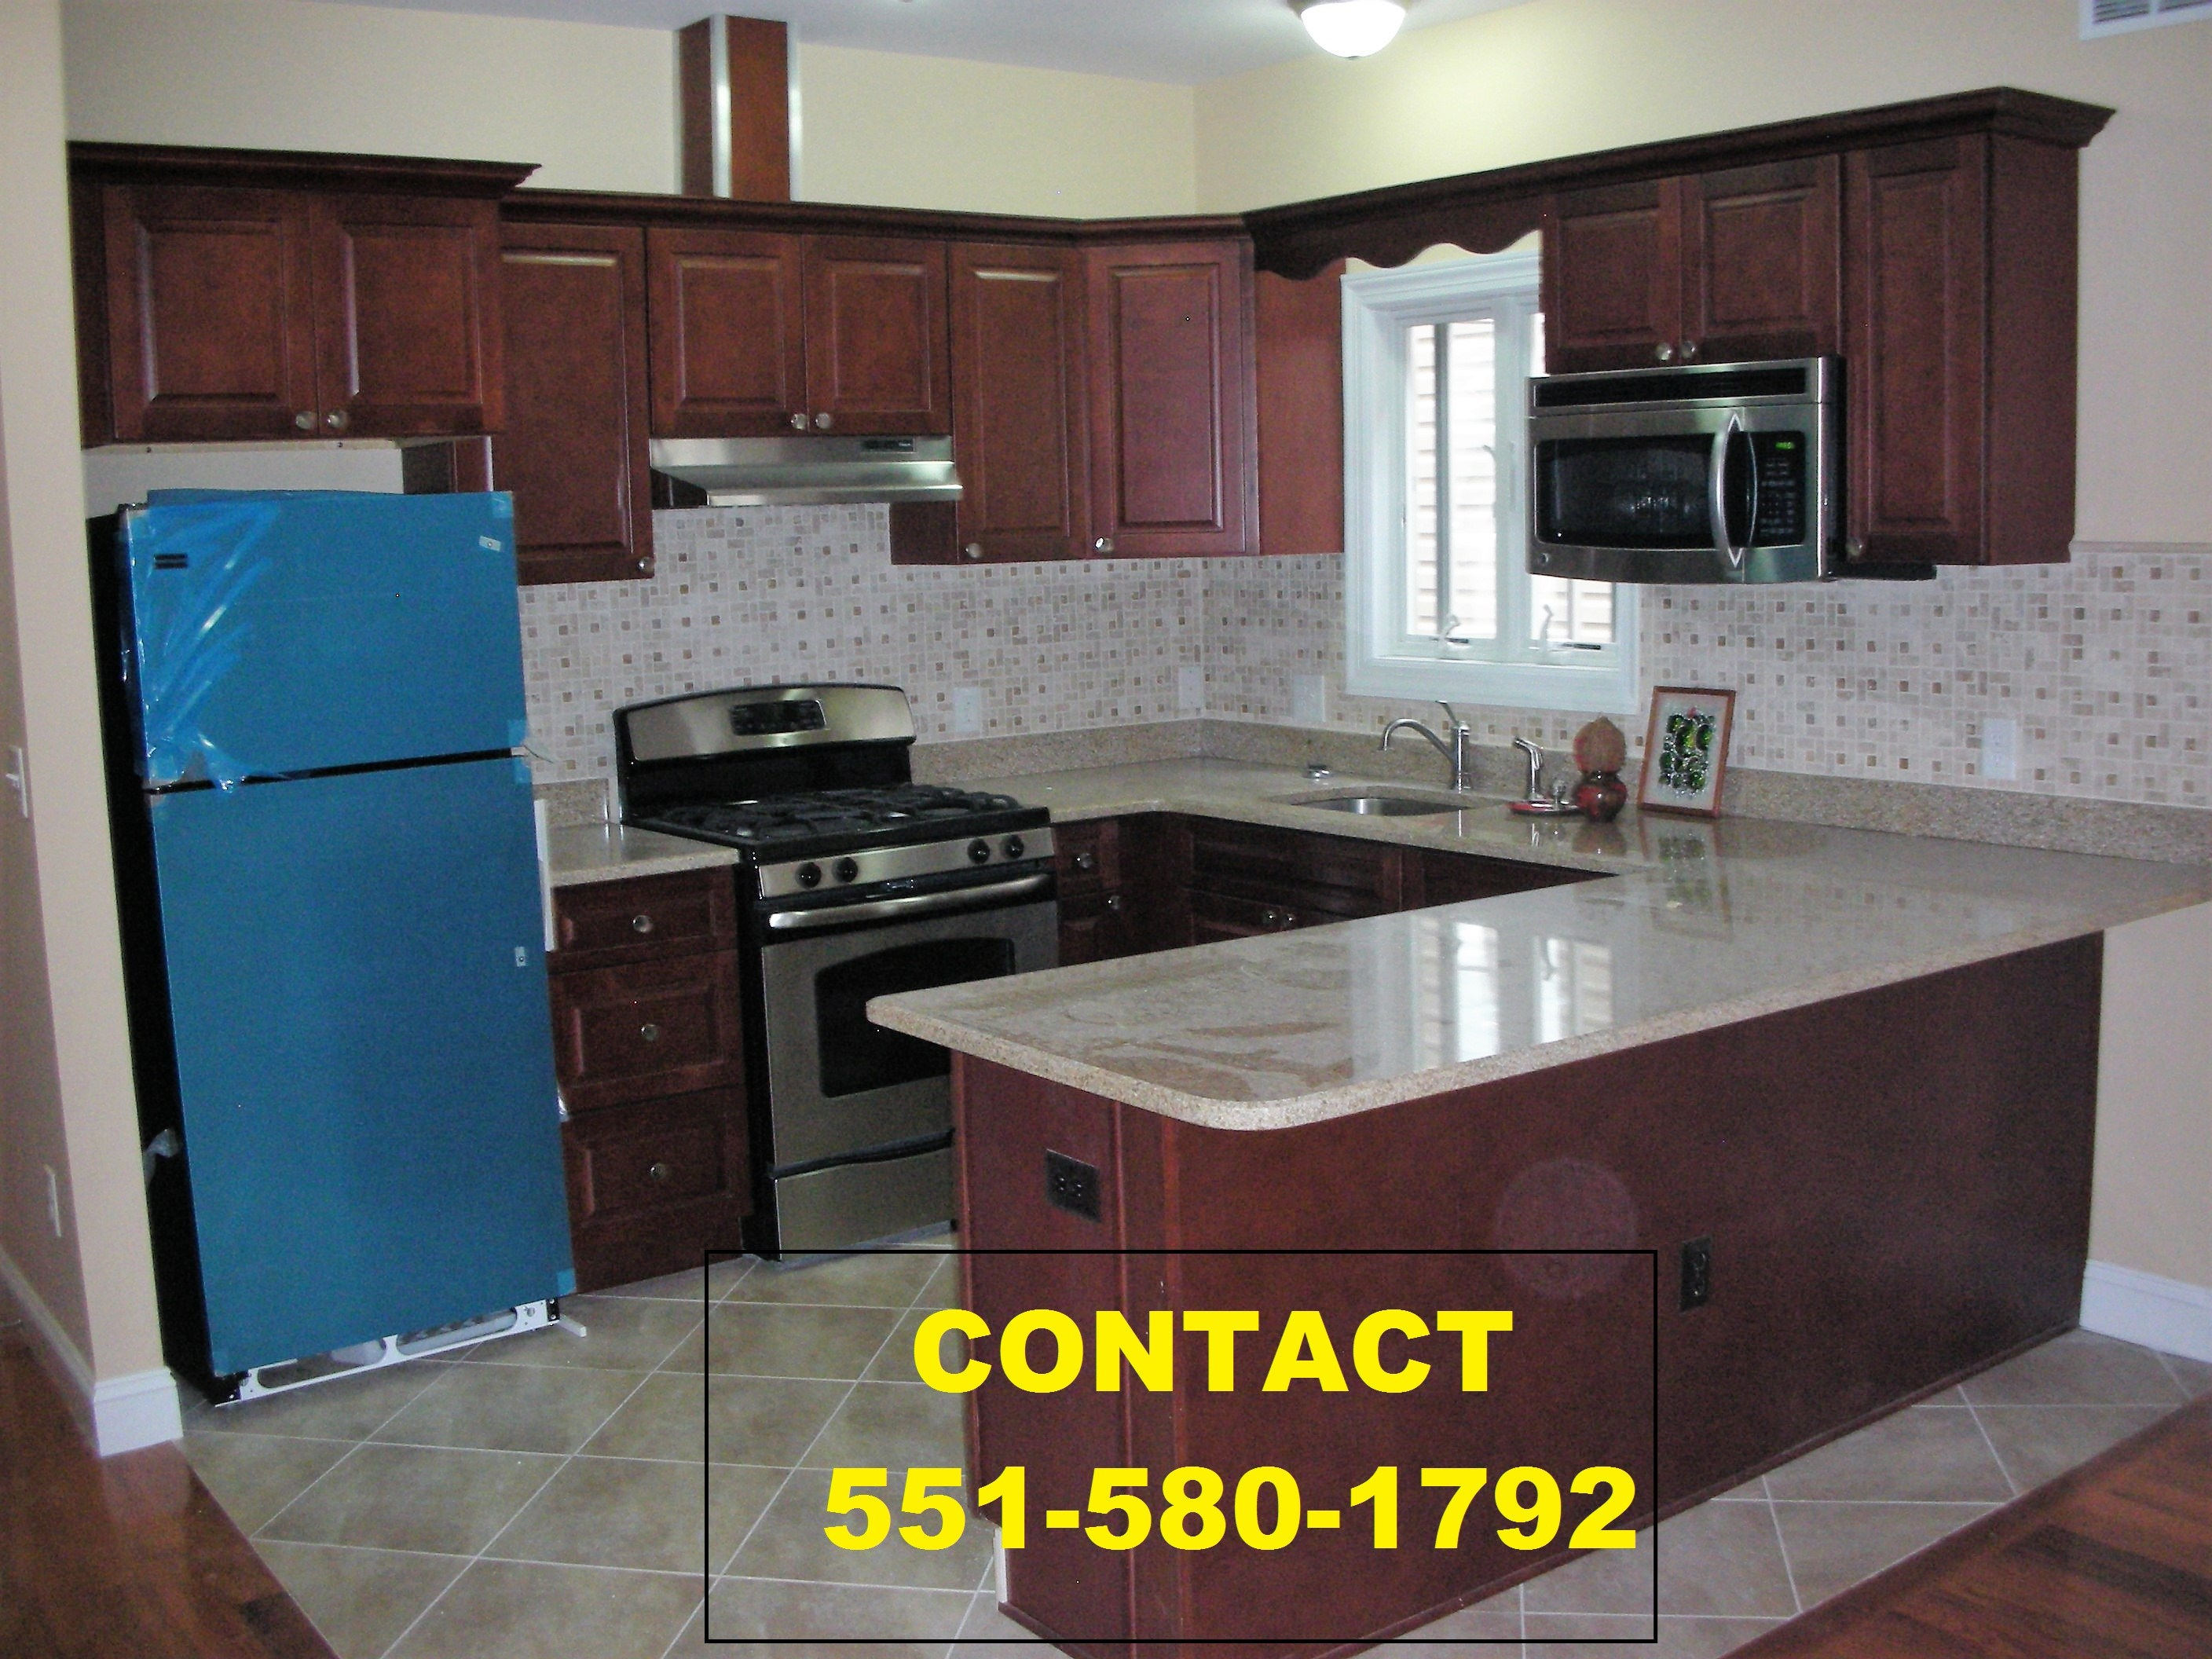 newport jersey city rent 800 shared room and rent 1200